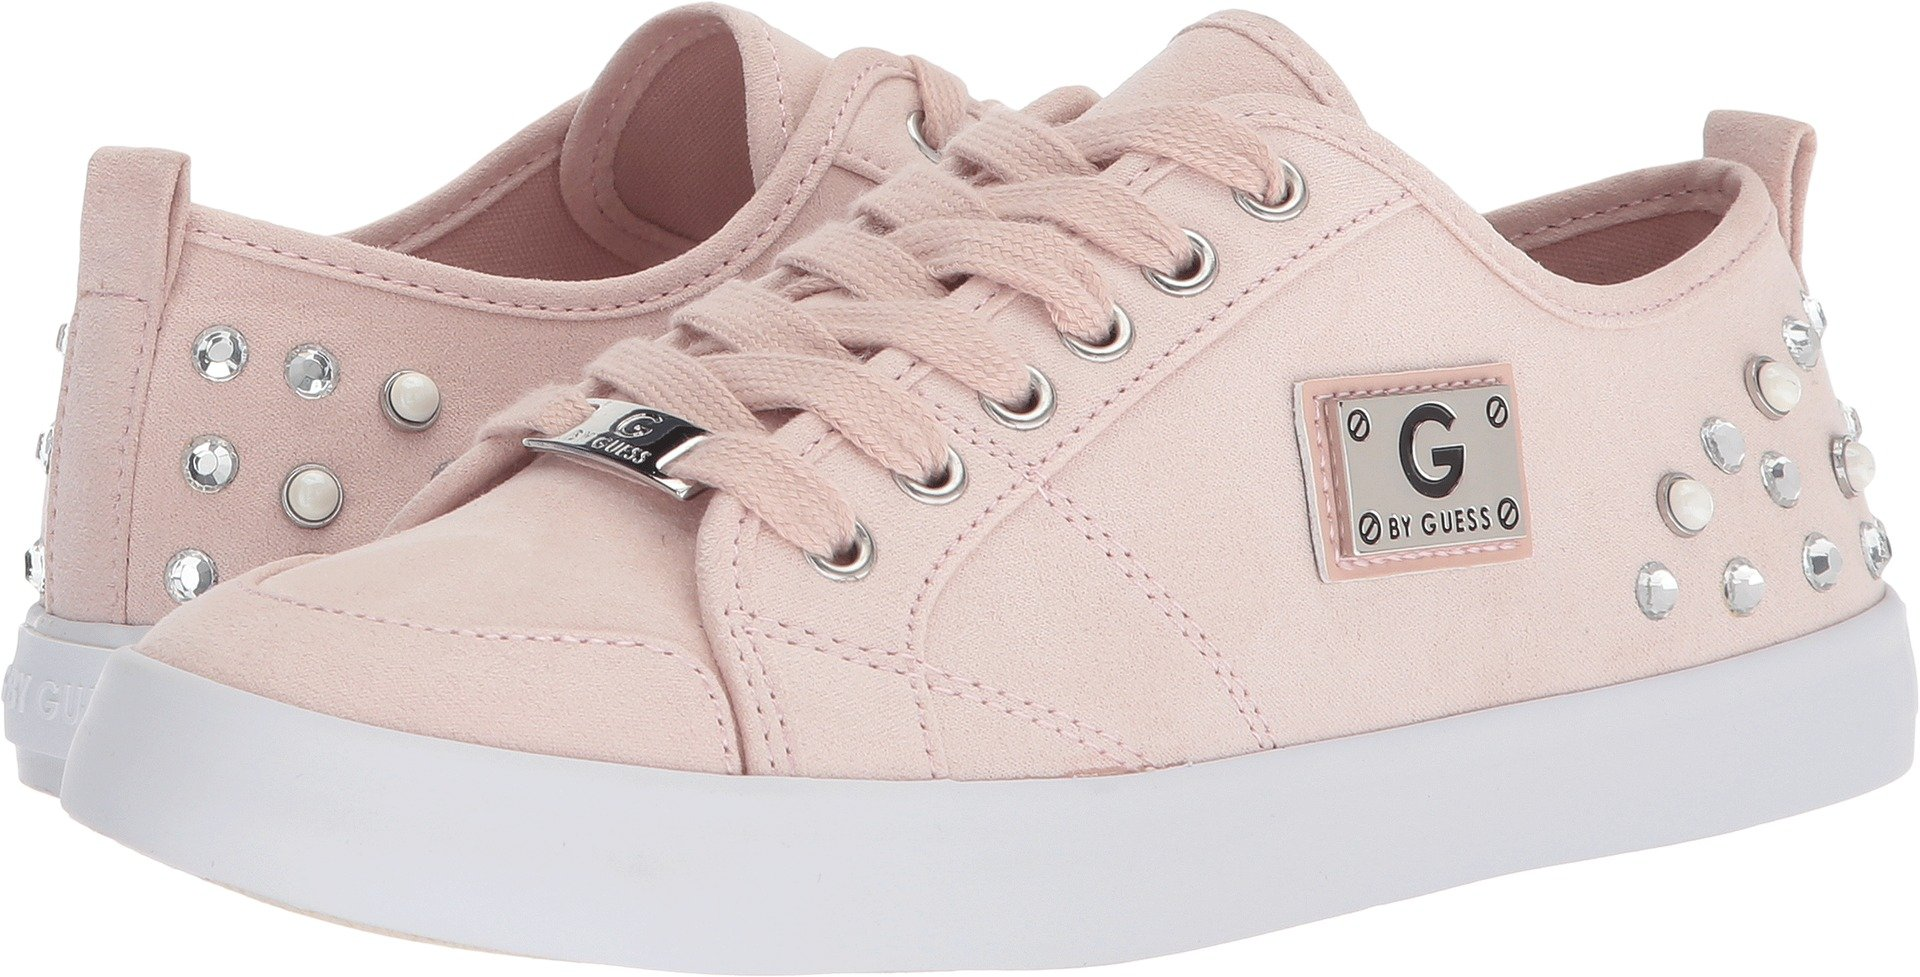 G by GUESS Women's Marvin Blush 10 M US